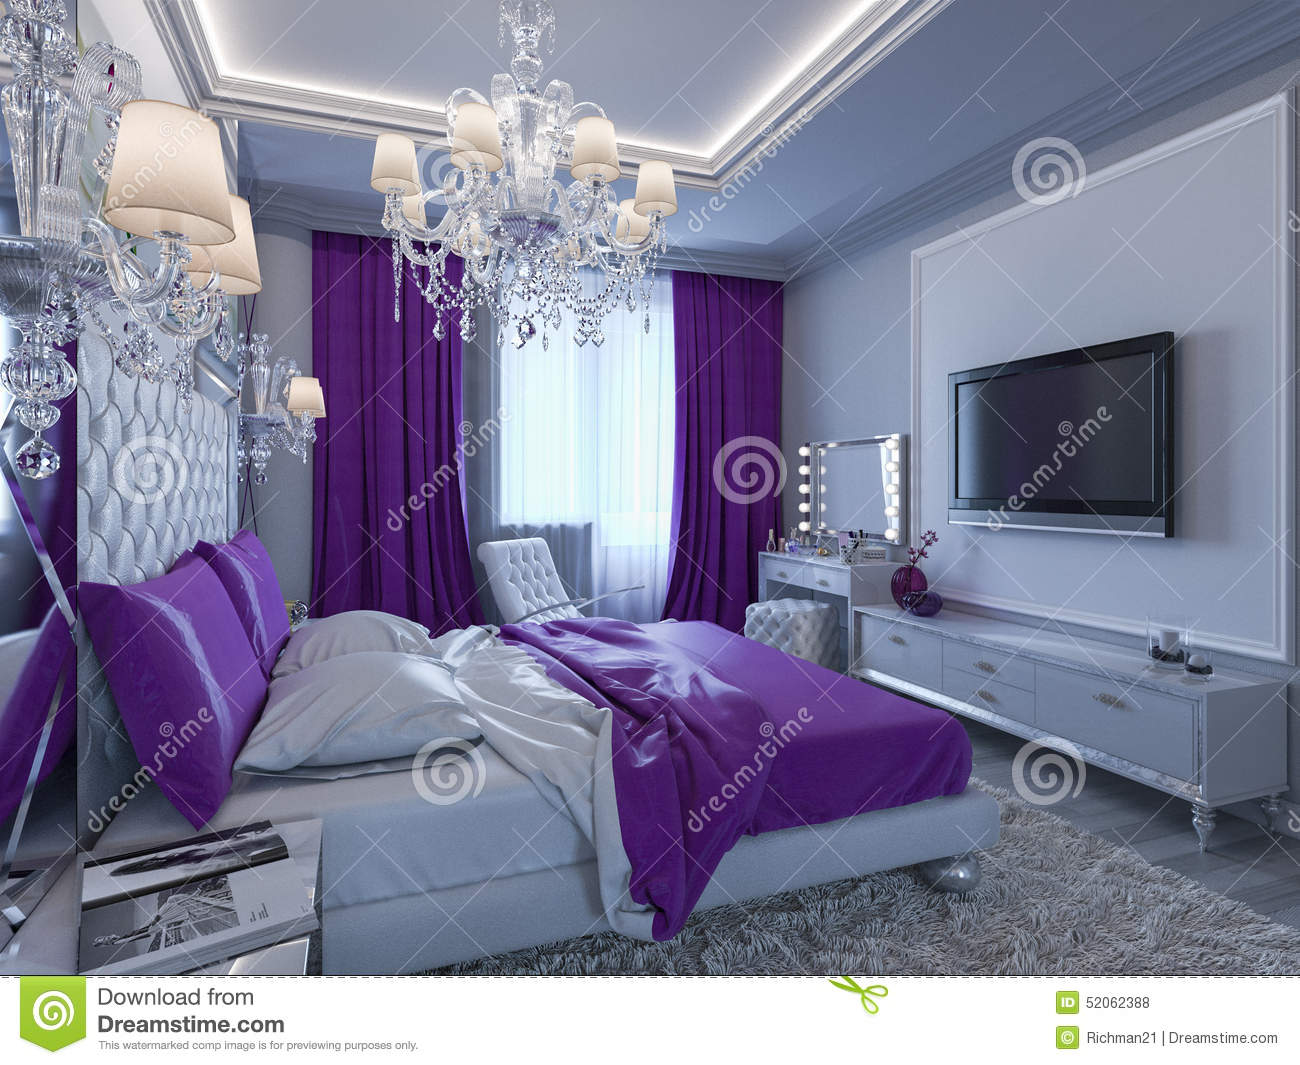 3d rendering bedroom in gray and white tones with purple 12961 | d rendering bedroom gray white tones purple accents accent 52062388